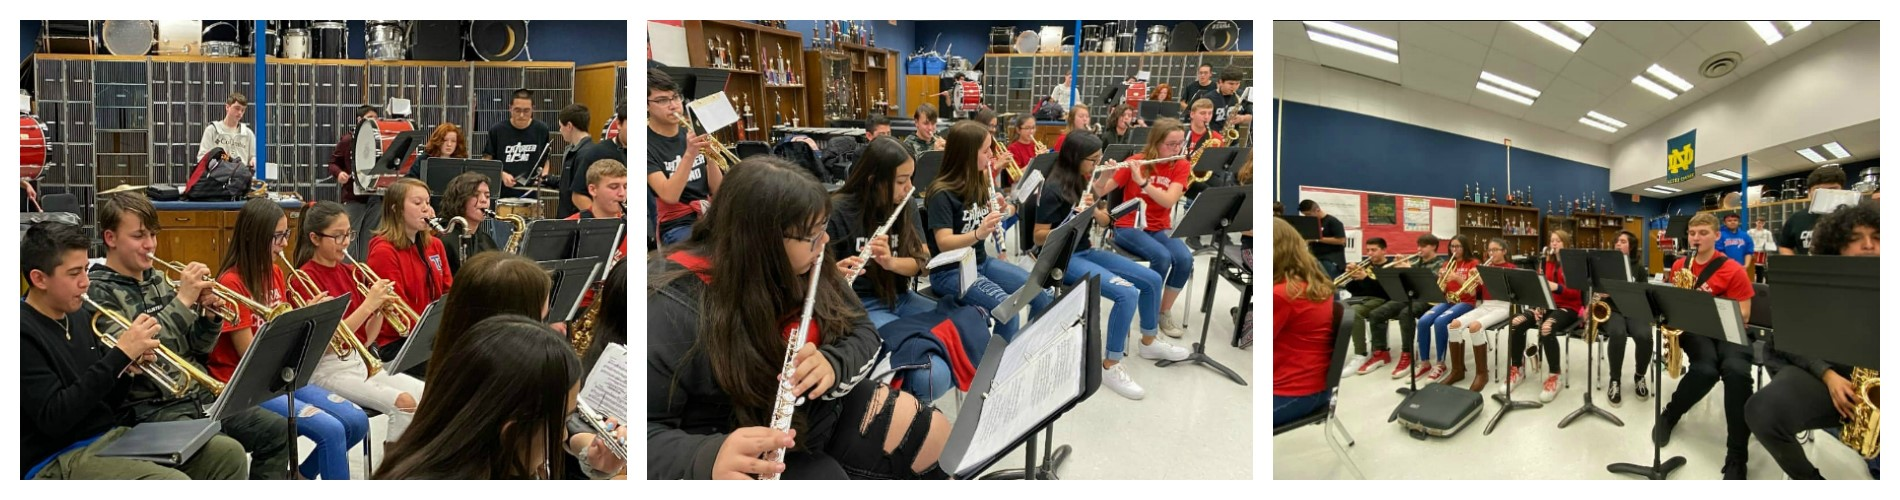 8th-grade band members help perform at high school